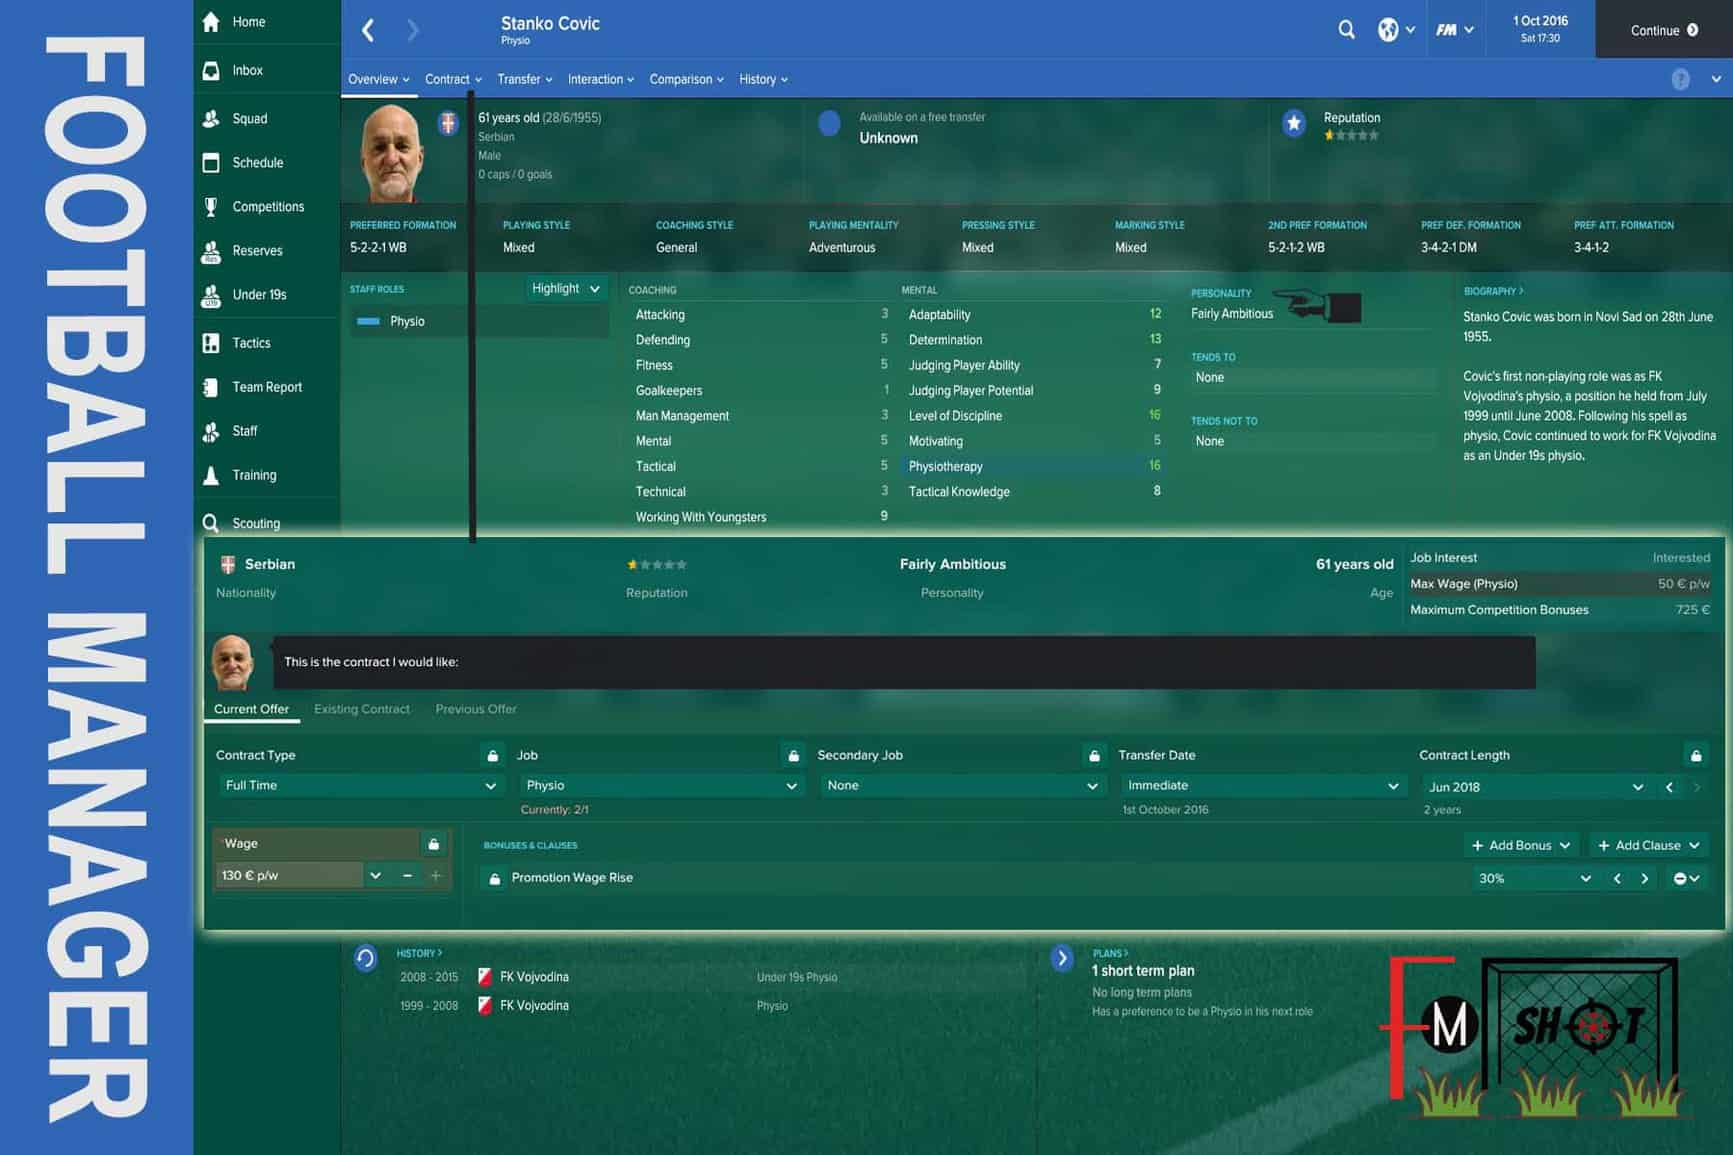 Personality and Contract Offer in FM 17